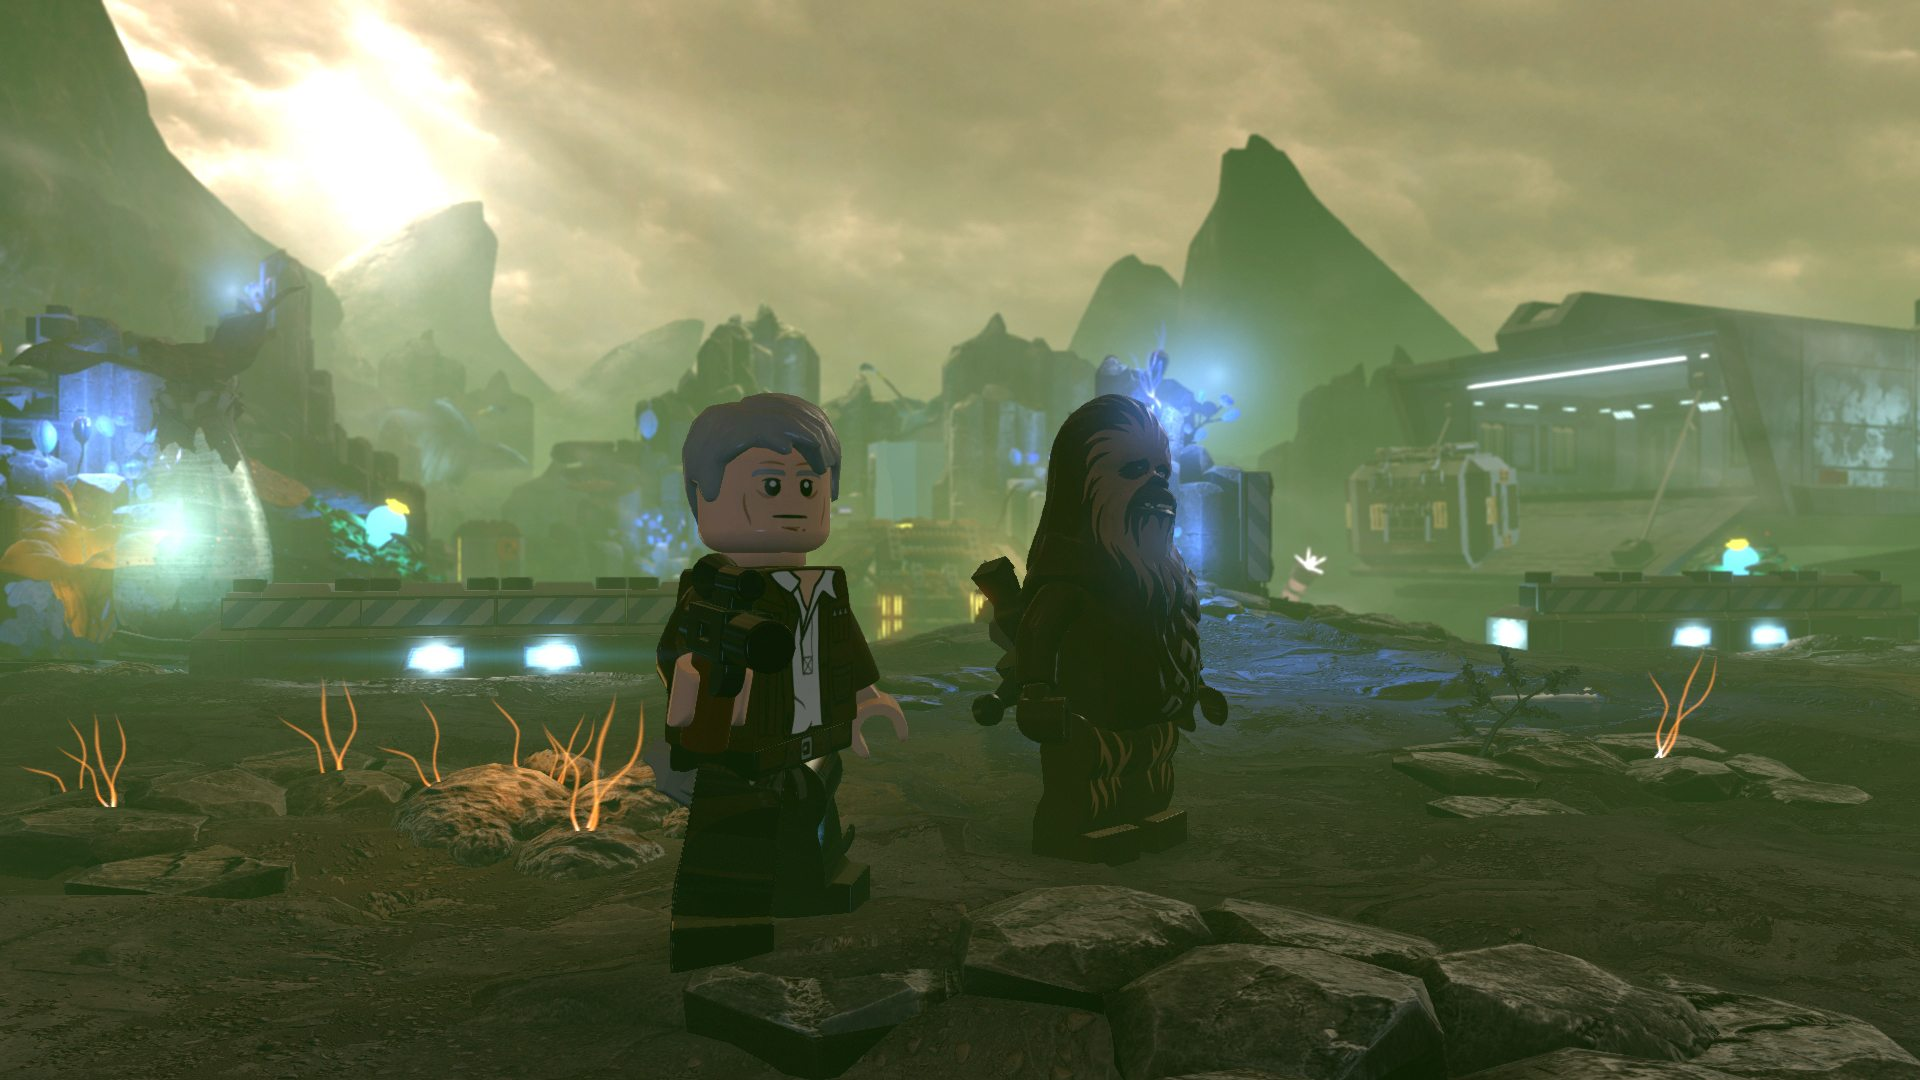 LEGO Star Wars: The Force Awakens will be released on June 28, 2016 and marks the triumphant return of the No. 1 LEGO videogame franchise, immersing fans in the new Star Wars adventure like never before. Players can relive the epic action from the blockbuster film in a way that only LEGO can offer, featuring all of the storylines from Star Wars: The Force Awakens, retold through the clever and witty LEGO lens. The game will also feature exclusive playable content exploring untold adventures set in the time leading up to Star Wars: The Force Awakens, providing further insight about the new movie and its characters. The game will be available for PlayStation 4, PlayStation 3, PlayStation Vita, Xbox One, Xbox 360, Wii U, Nintendo 3DS and Steam (Windows PC).